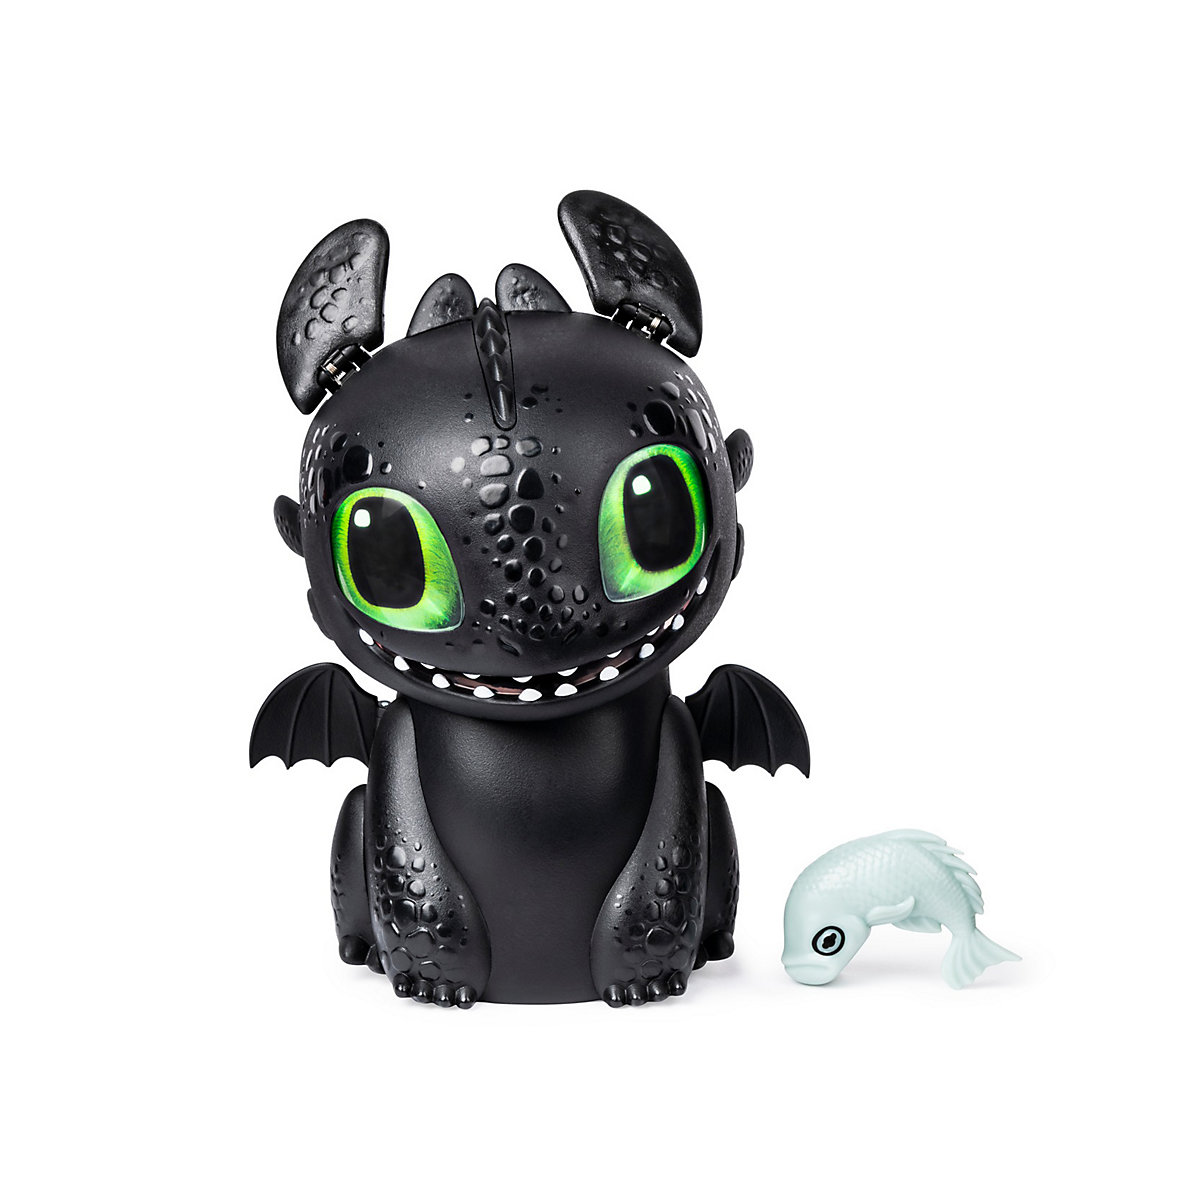 Dreamworks Dragons Hatching Interactive Baby Dragon Toothless